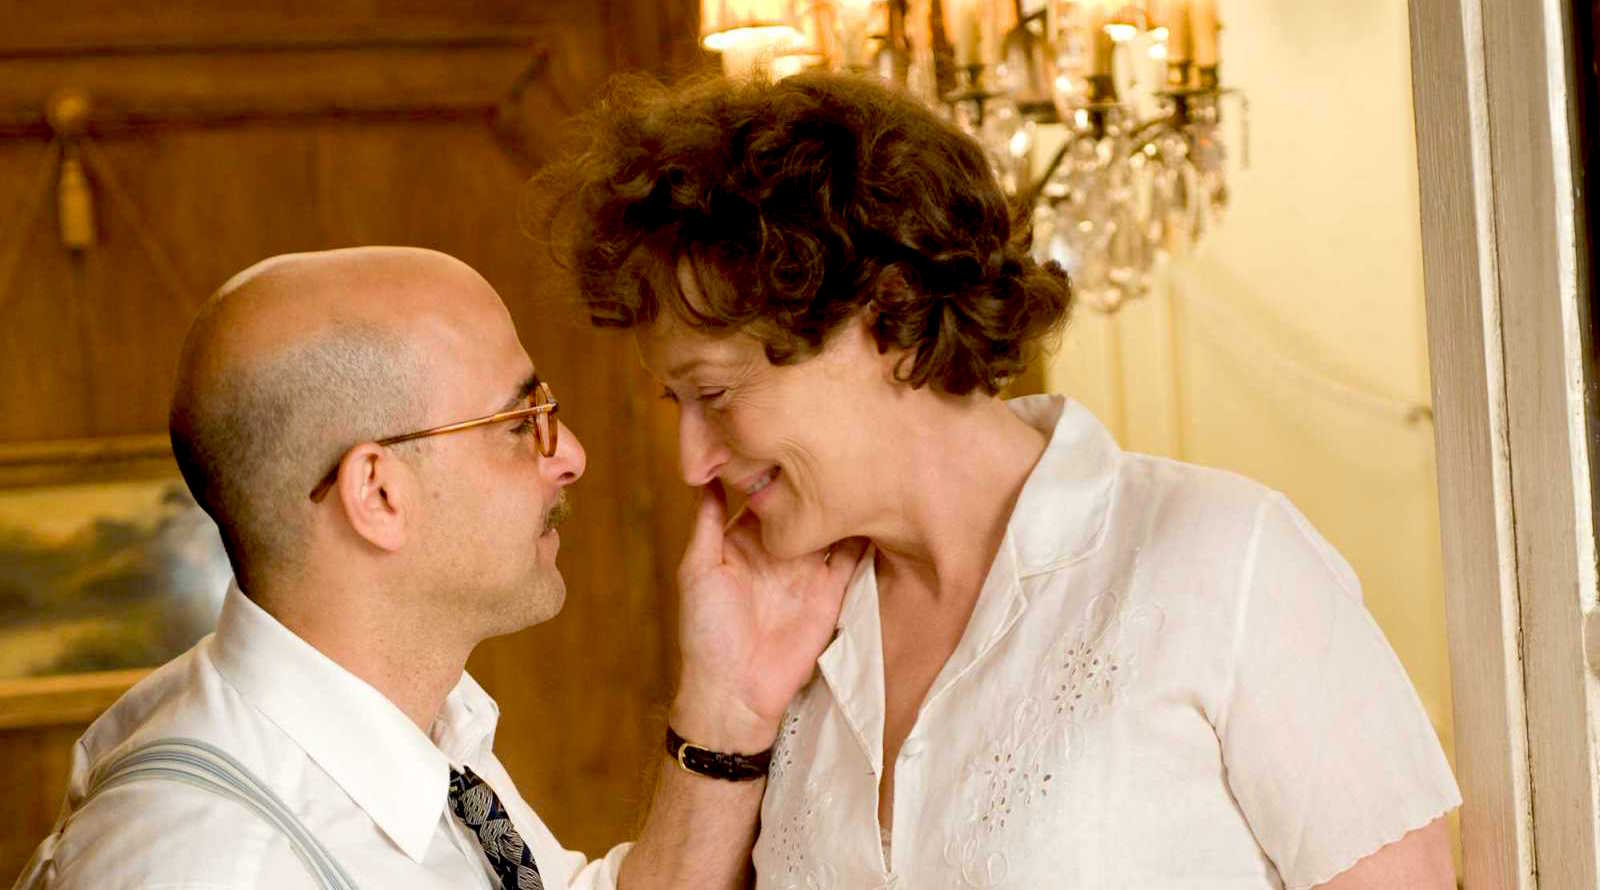 Julie & Julia - couple